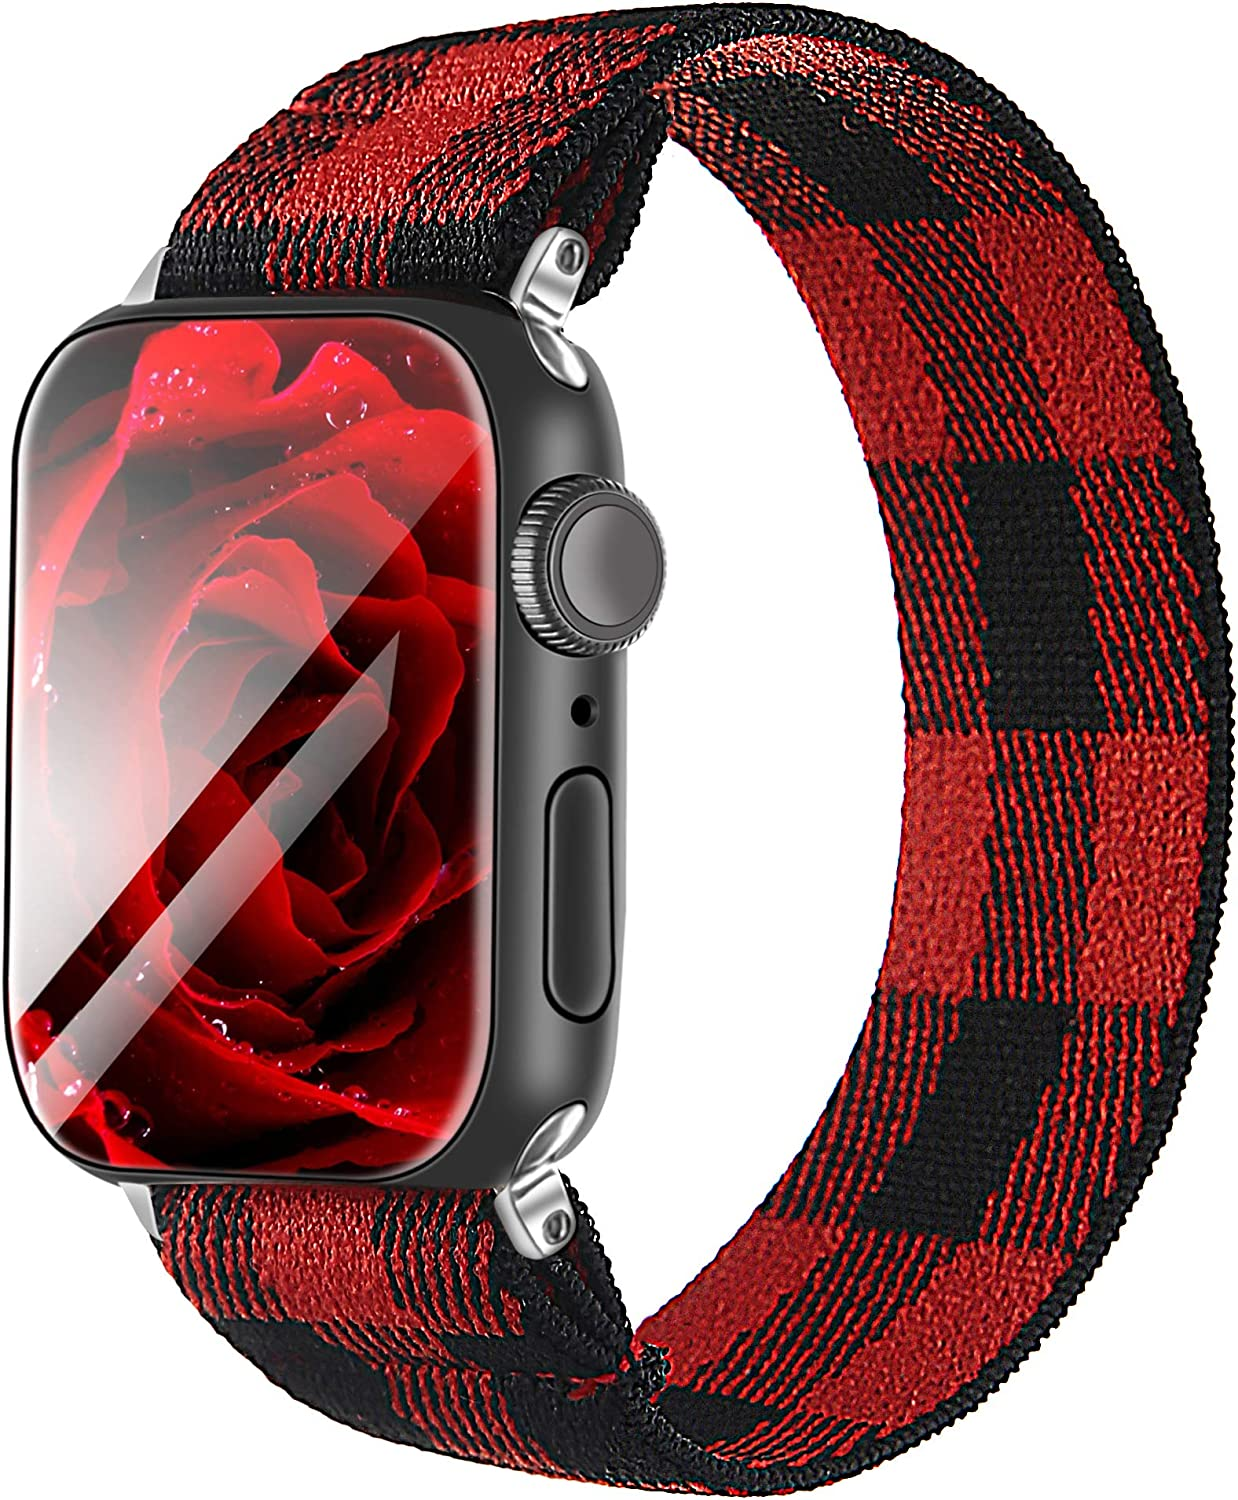 Elastic Strap/Band for Apple Watch, Cloth Wool Band Wristband Strap Bracelet Women Scrunchies Compatible with Iwatch Band Series 1 2 3 4 5 (Black&Red-2, 38mm/40mm)